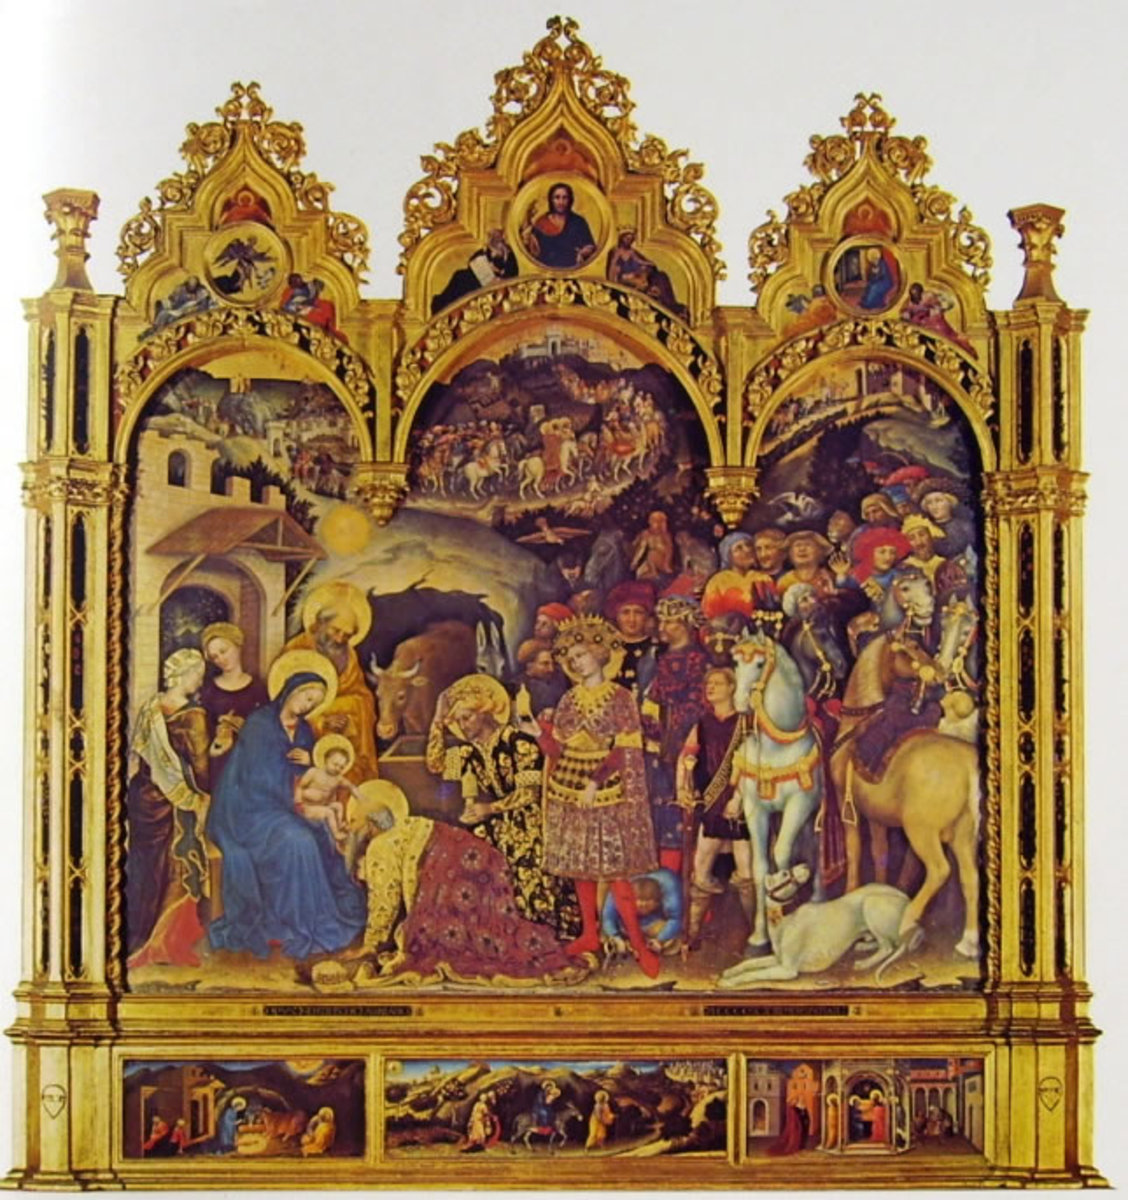 Gentile da Fabriano, Adoration of the Magi (1423), Florence Galleria degli Uffizi